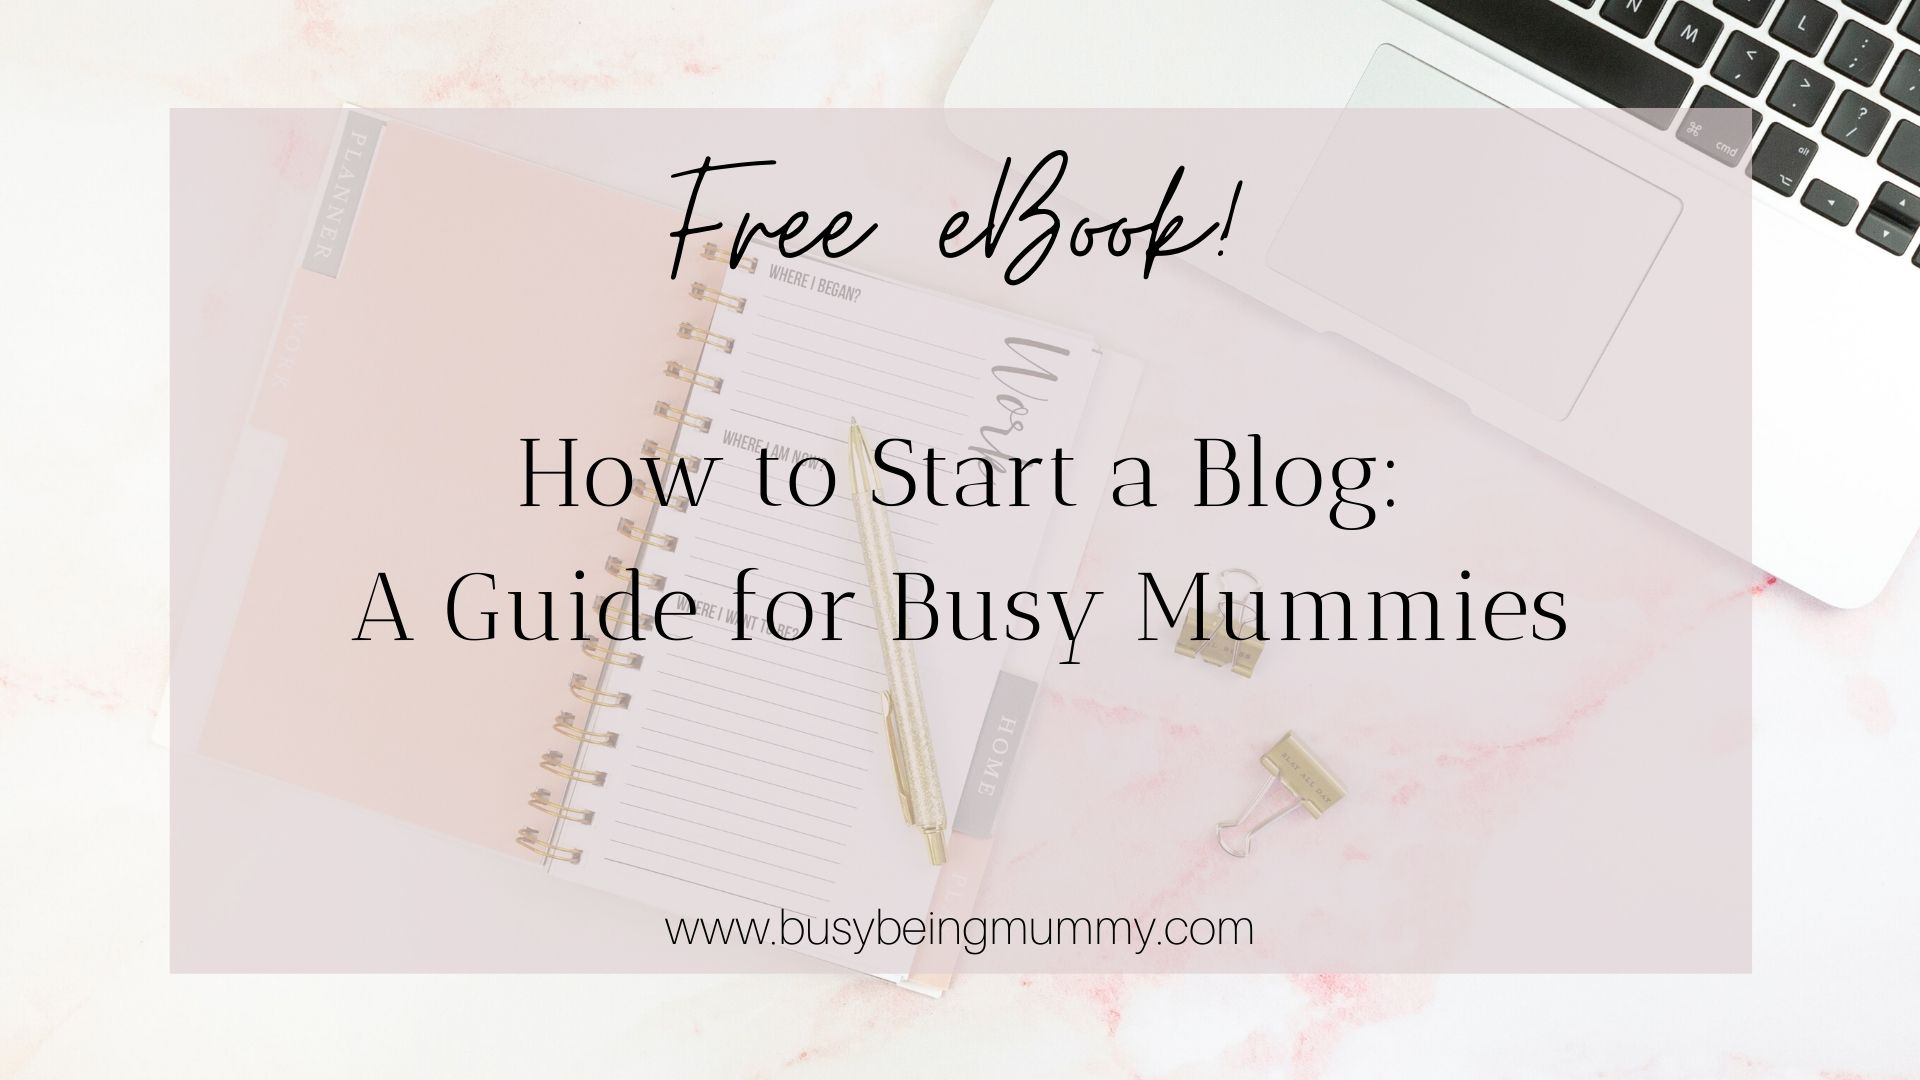 free ebook How to start a blog a guide for busy mummies